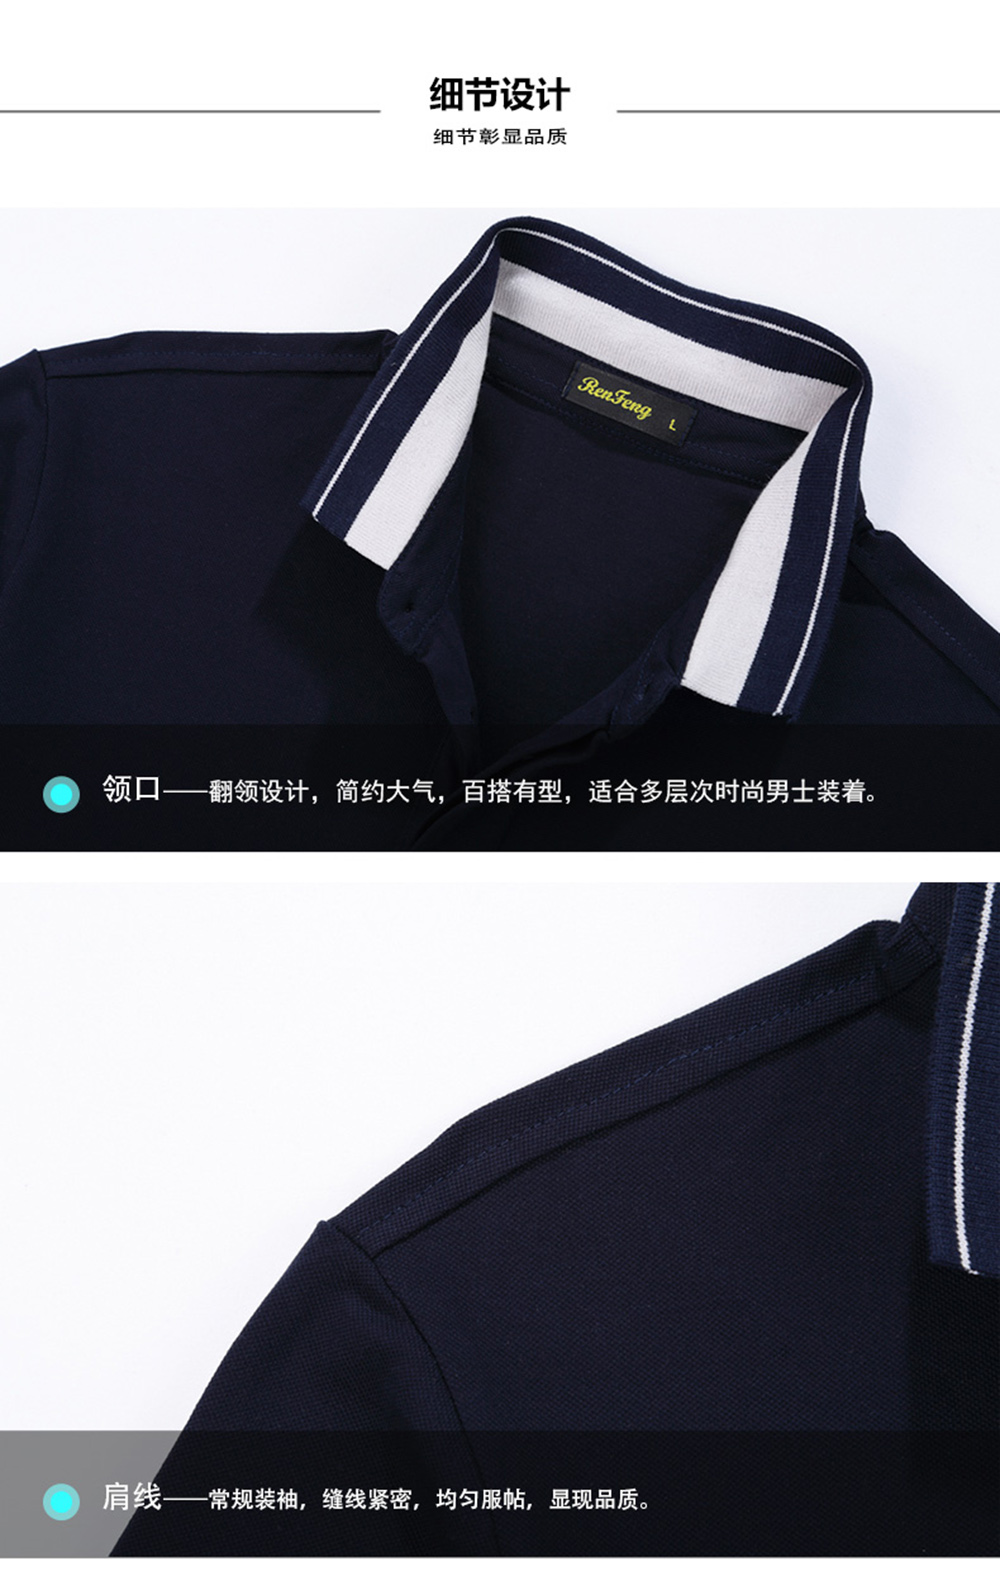 2018 Fashion Clothing New Men  Shirt Men Business & Casual Solid Male Shirt Short Sleeve Breathable Summer Chemise  (5)